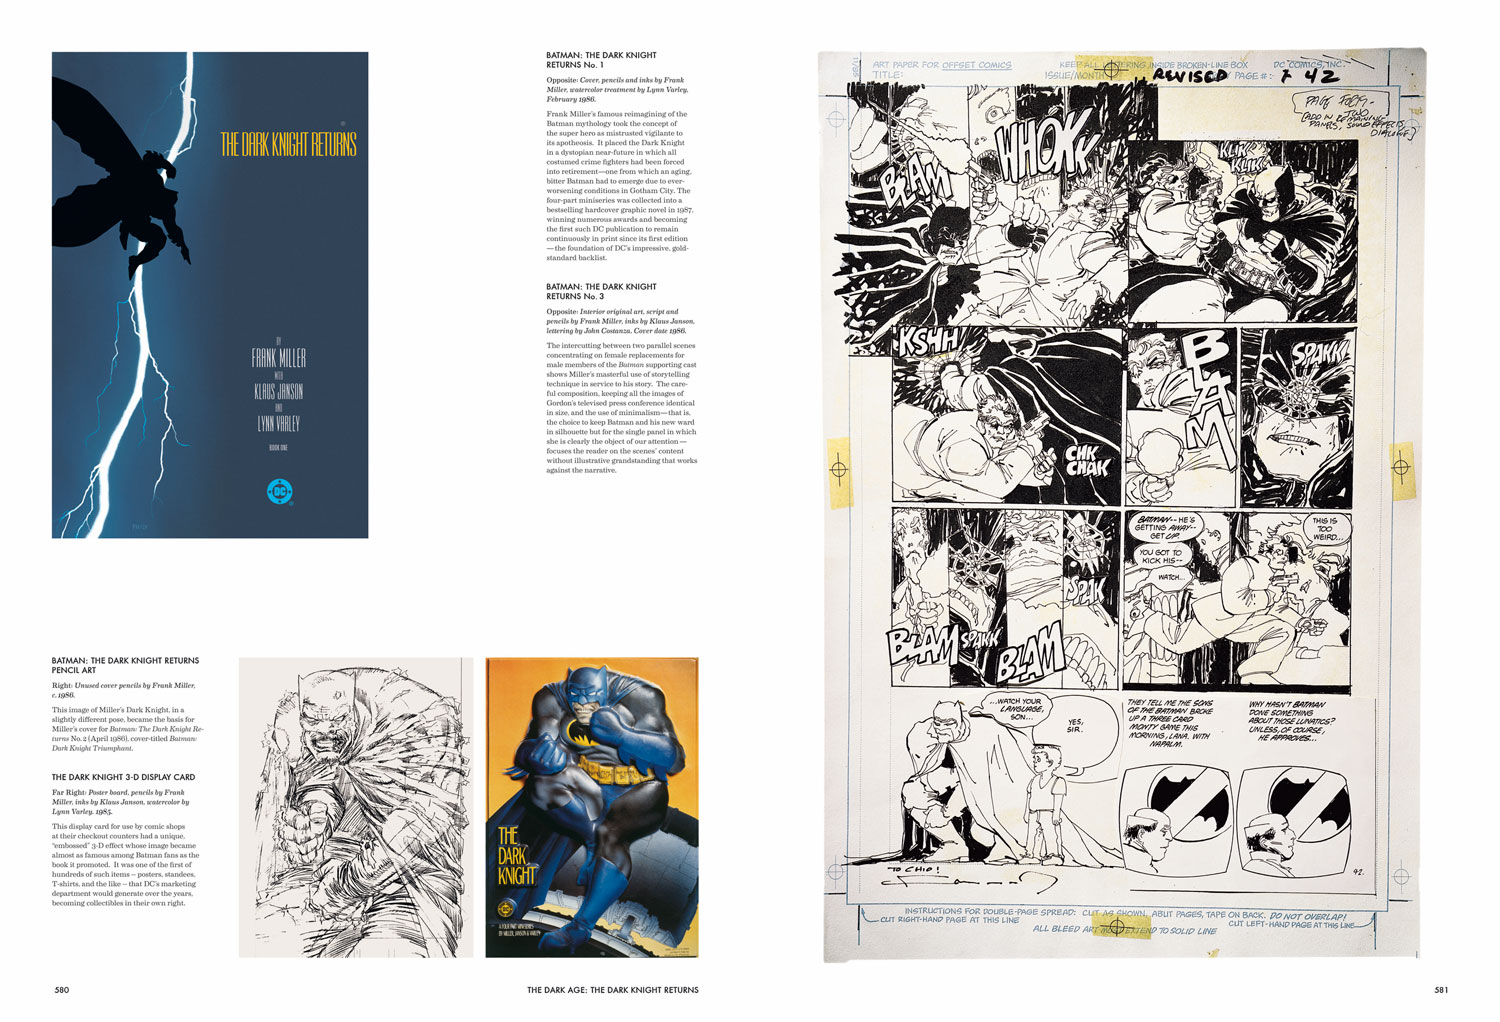 75 Years of DC Comics, interior spread featuring Frank Miller's The Dark Knight, 1985-1986 (TM & © 2010 DC Comics. All Rights Reserved/Courtesy TASCHEN)